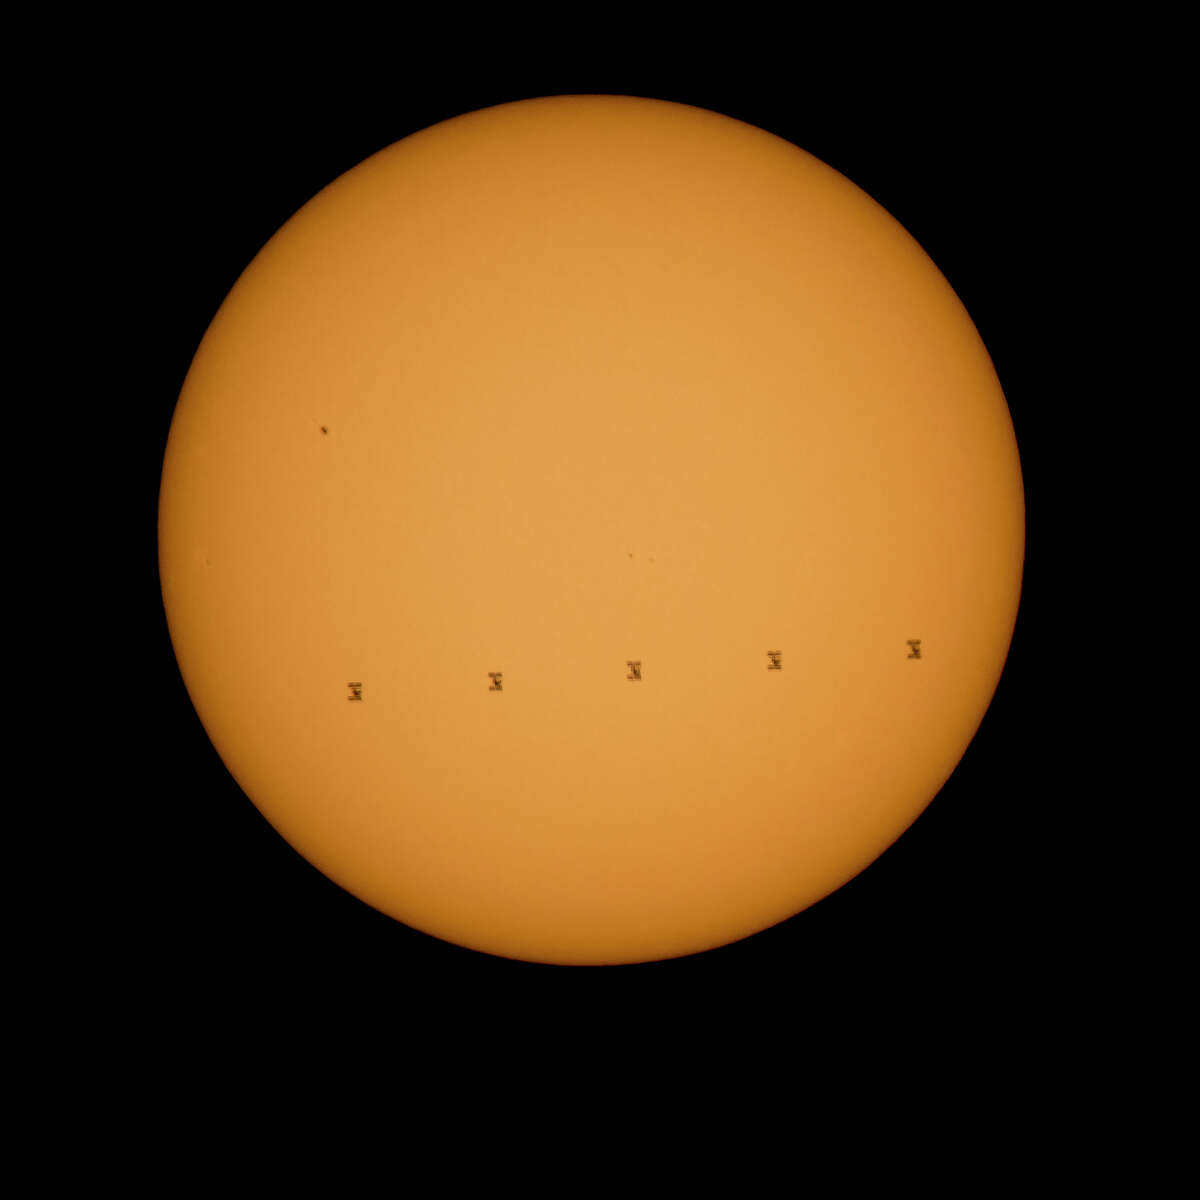 FRONT ROYAL, VA - SEPTEMBER 06: In this handout composite image provided by NASA, five frames show the International Space Station, with a crew of six onboard, in silhouette as it transits the sun at roughly five miles per second September 6, 2015, as seen from Shenandoah National Park in Front Royal, Virginia. Onboard the space station is NASA astronauts Scott Kelly, Kjell Lindgren, Russian Cosmonauts Gennady Padalka, Mikhail Kornienko, Oleg Kononenko, Sergey Volkov, Japanese astronaut Kimiya Yui, Danish Astronaut Andreas Mogensen and Kazakhstan Cosmonaut Aidyn Aimbetov. (Photo by Bill Ingalls/NASA via Getty Images)